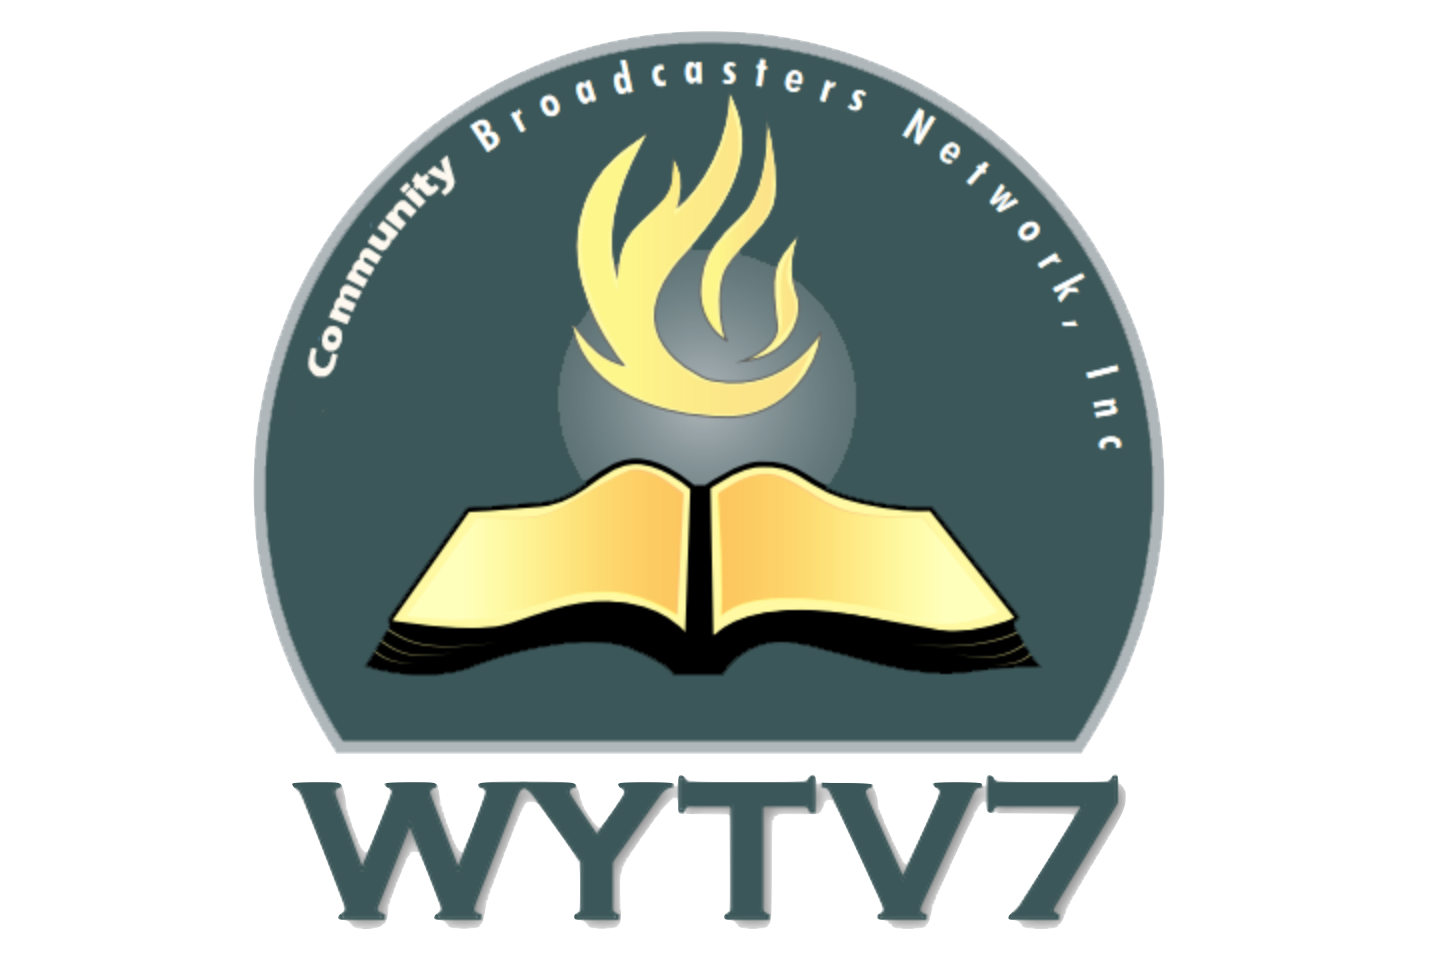 WYTV7 Christian Broadcasters Network, Inc Logo